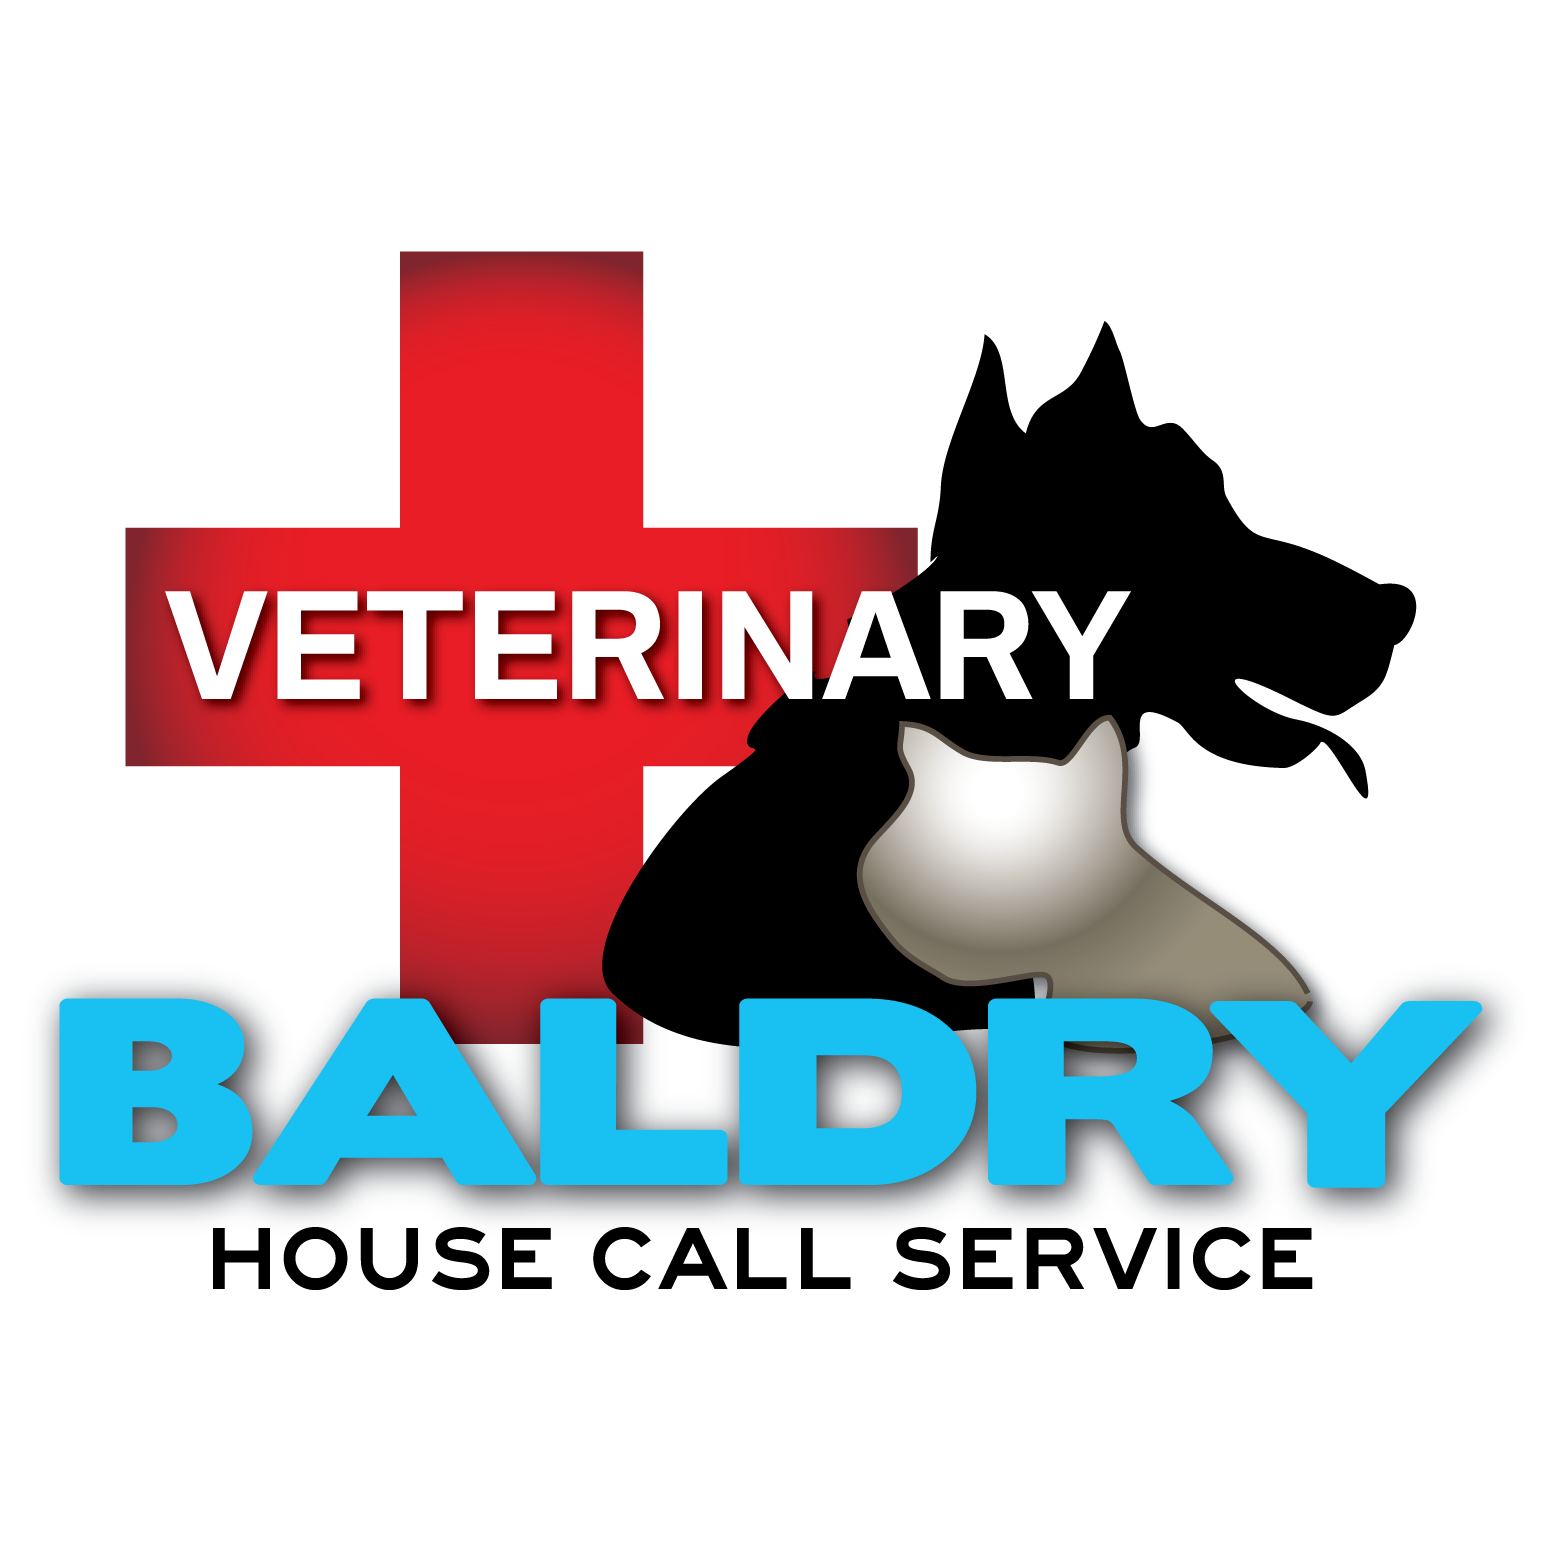 Logo Design by Teresa Abney - Entry No. 77 in the Logo Design Contest Captivating Logo Design for Baldry Veterinary House Call Service.